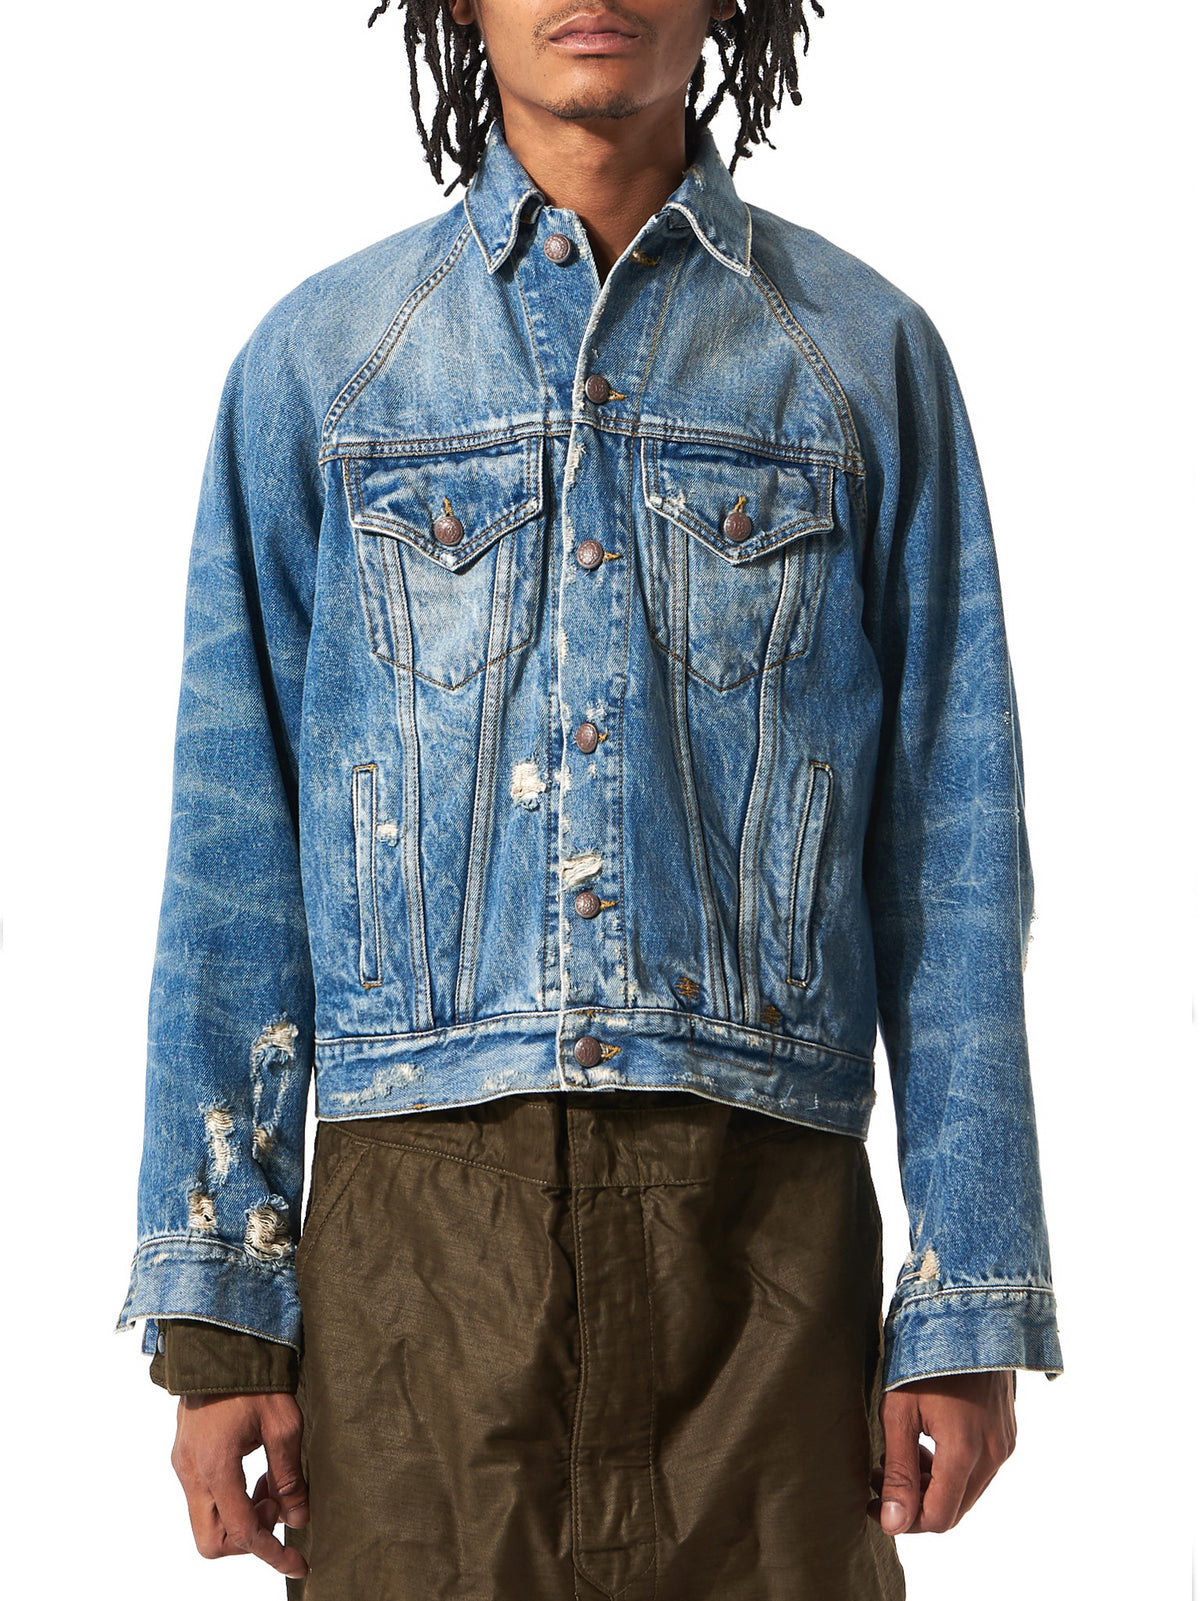 Distressed Raglan Denim(R13M1122-241 40S-BRUNL) - H. Lorenzo